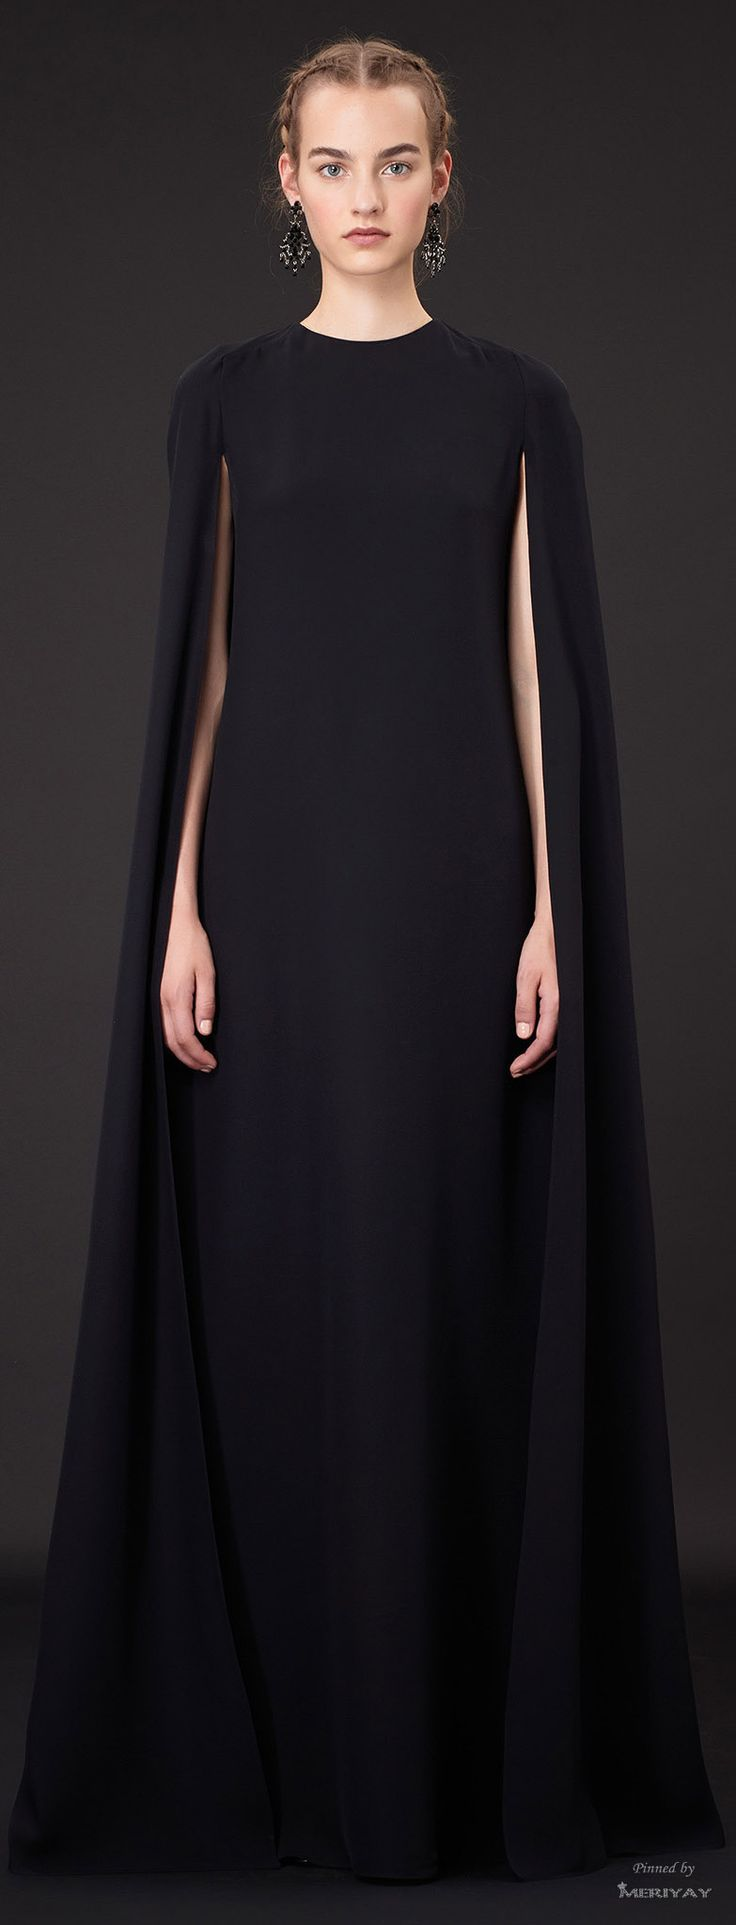 Understated Elegance - long black cape dress with clean minimal silhouette…